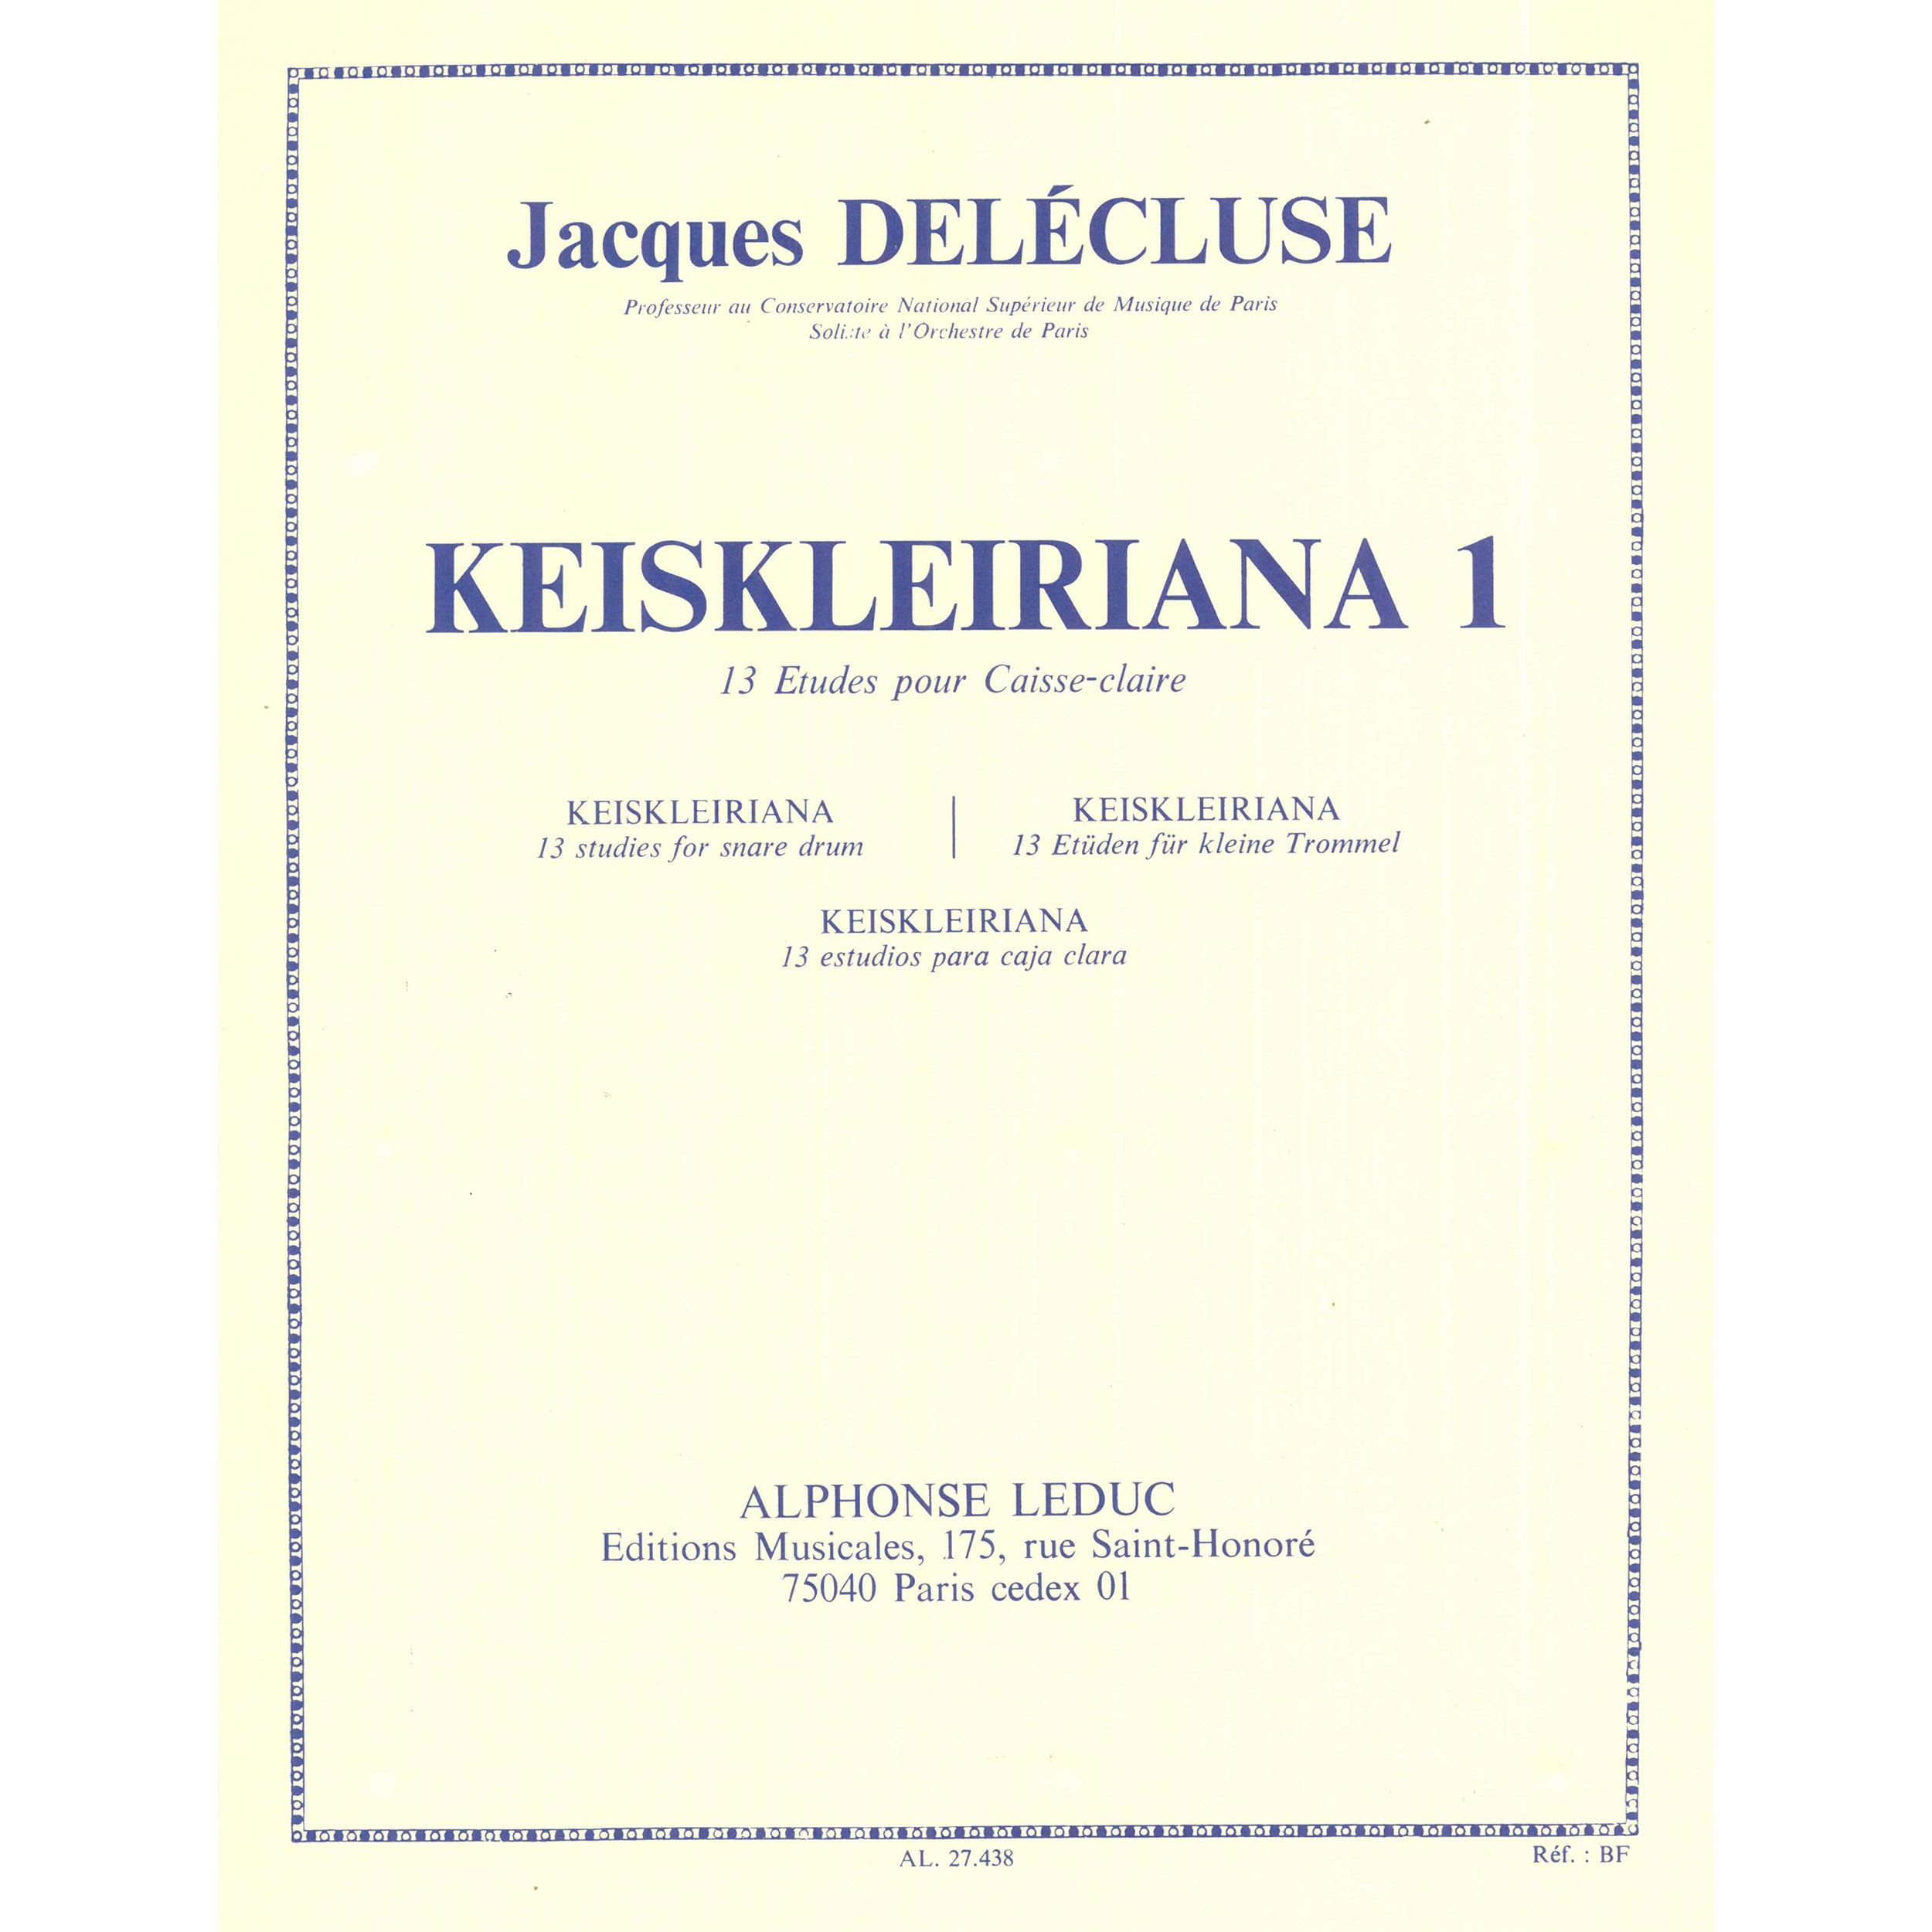 Keiskleiriana 1 by Jacques Delecluse